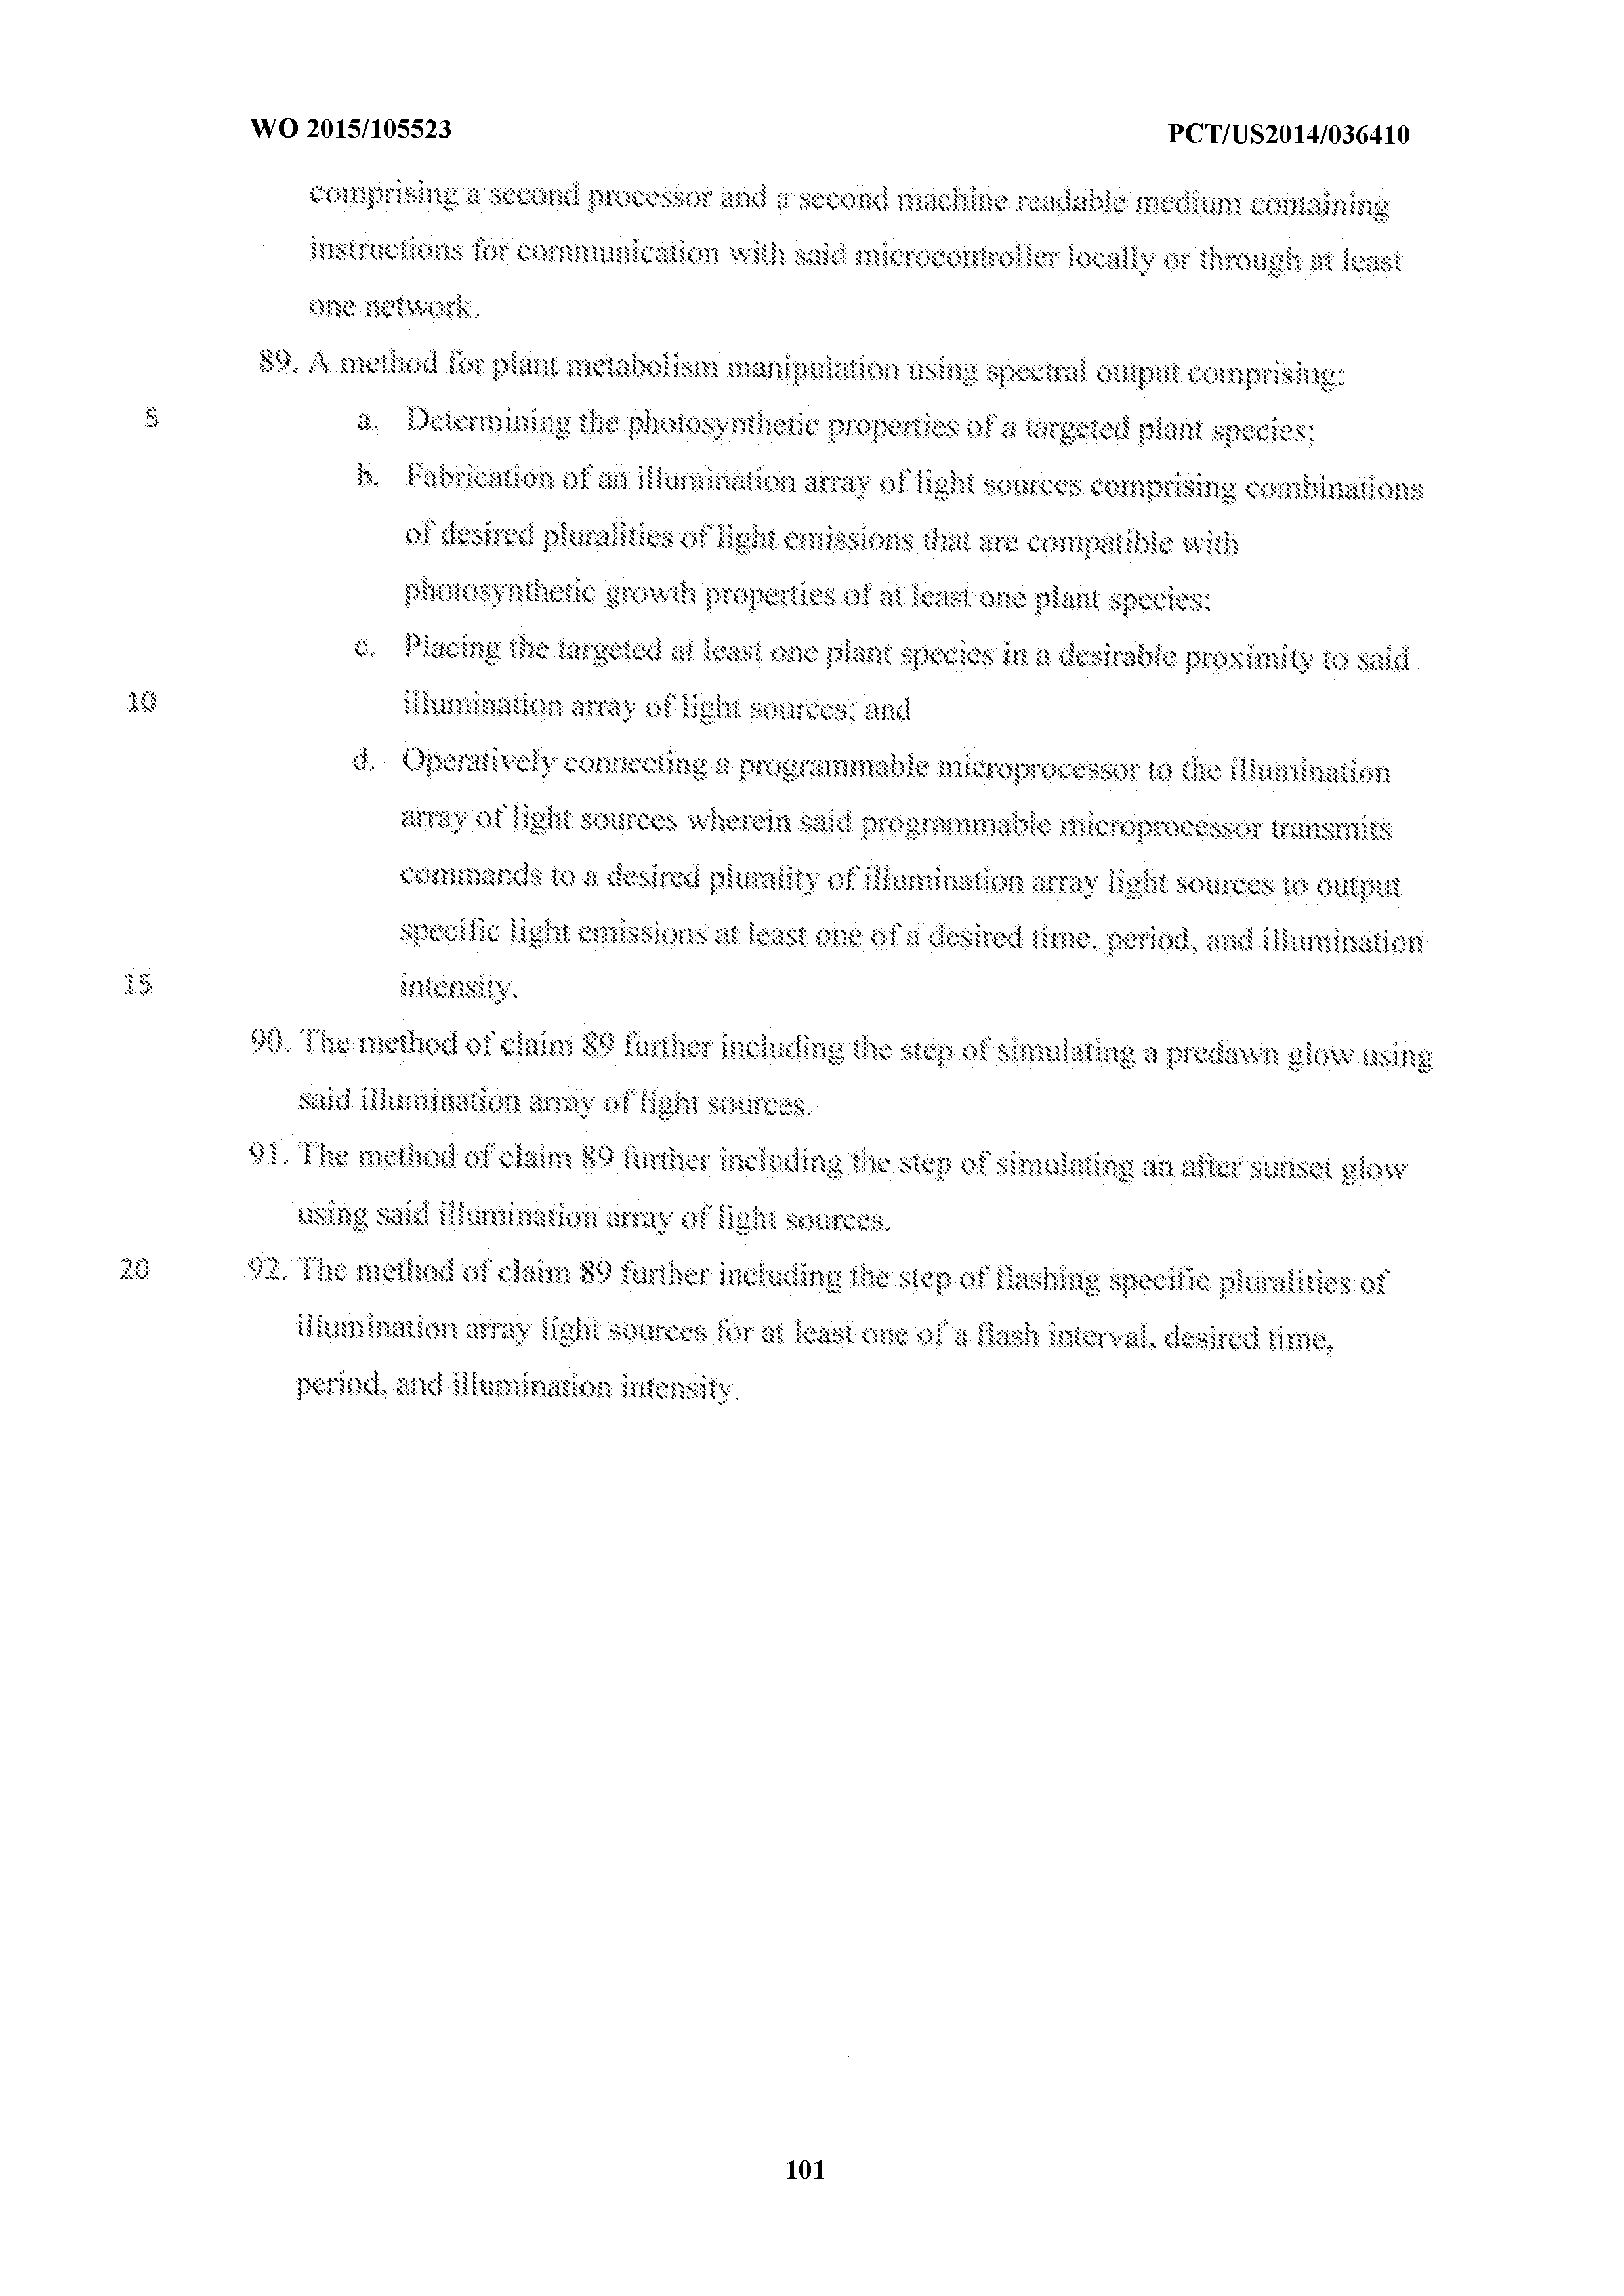 WO2015105523A1 - Automated hybrid aquaponics and bioreactor system